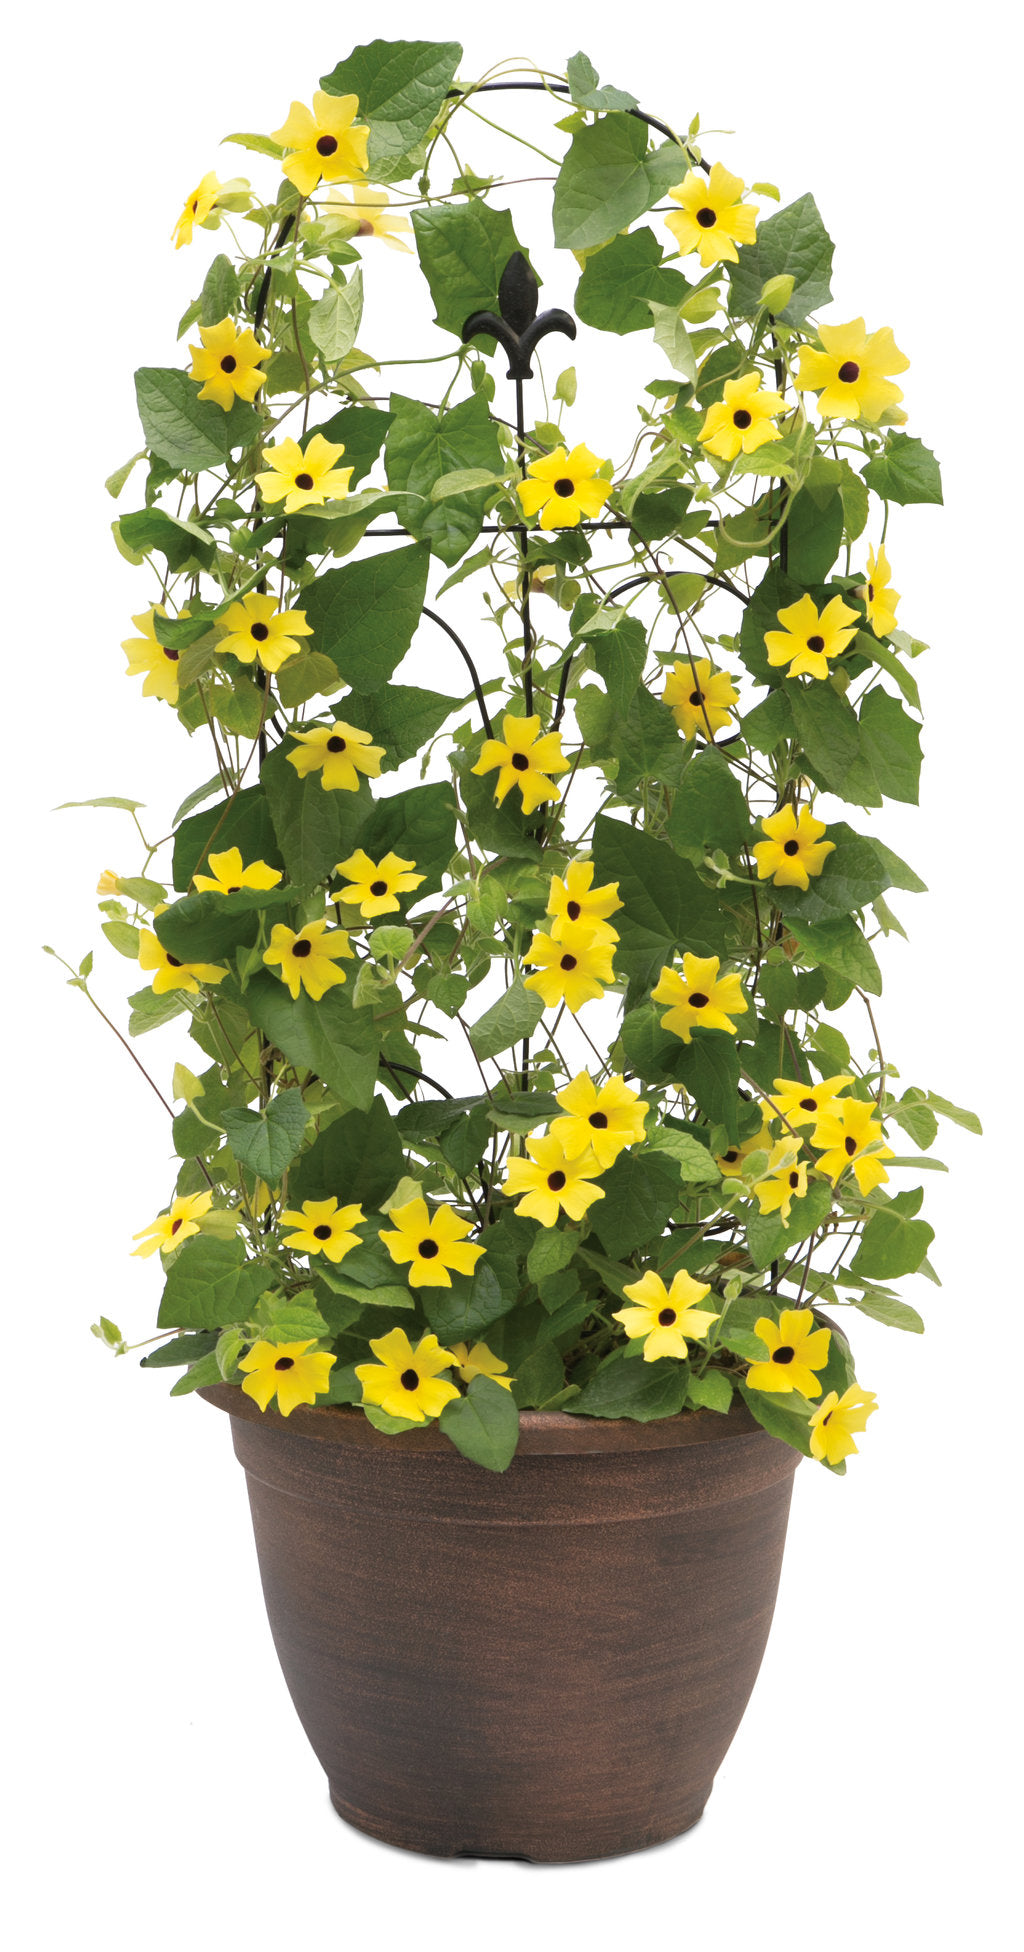 Lemon A-Peel® Black-Eyed Susan Vine | Proven Winners